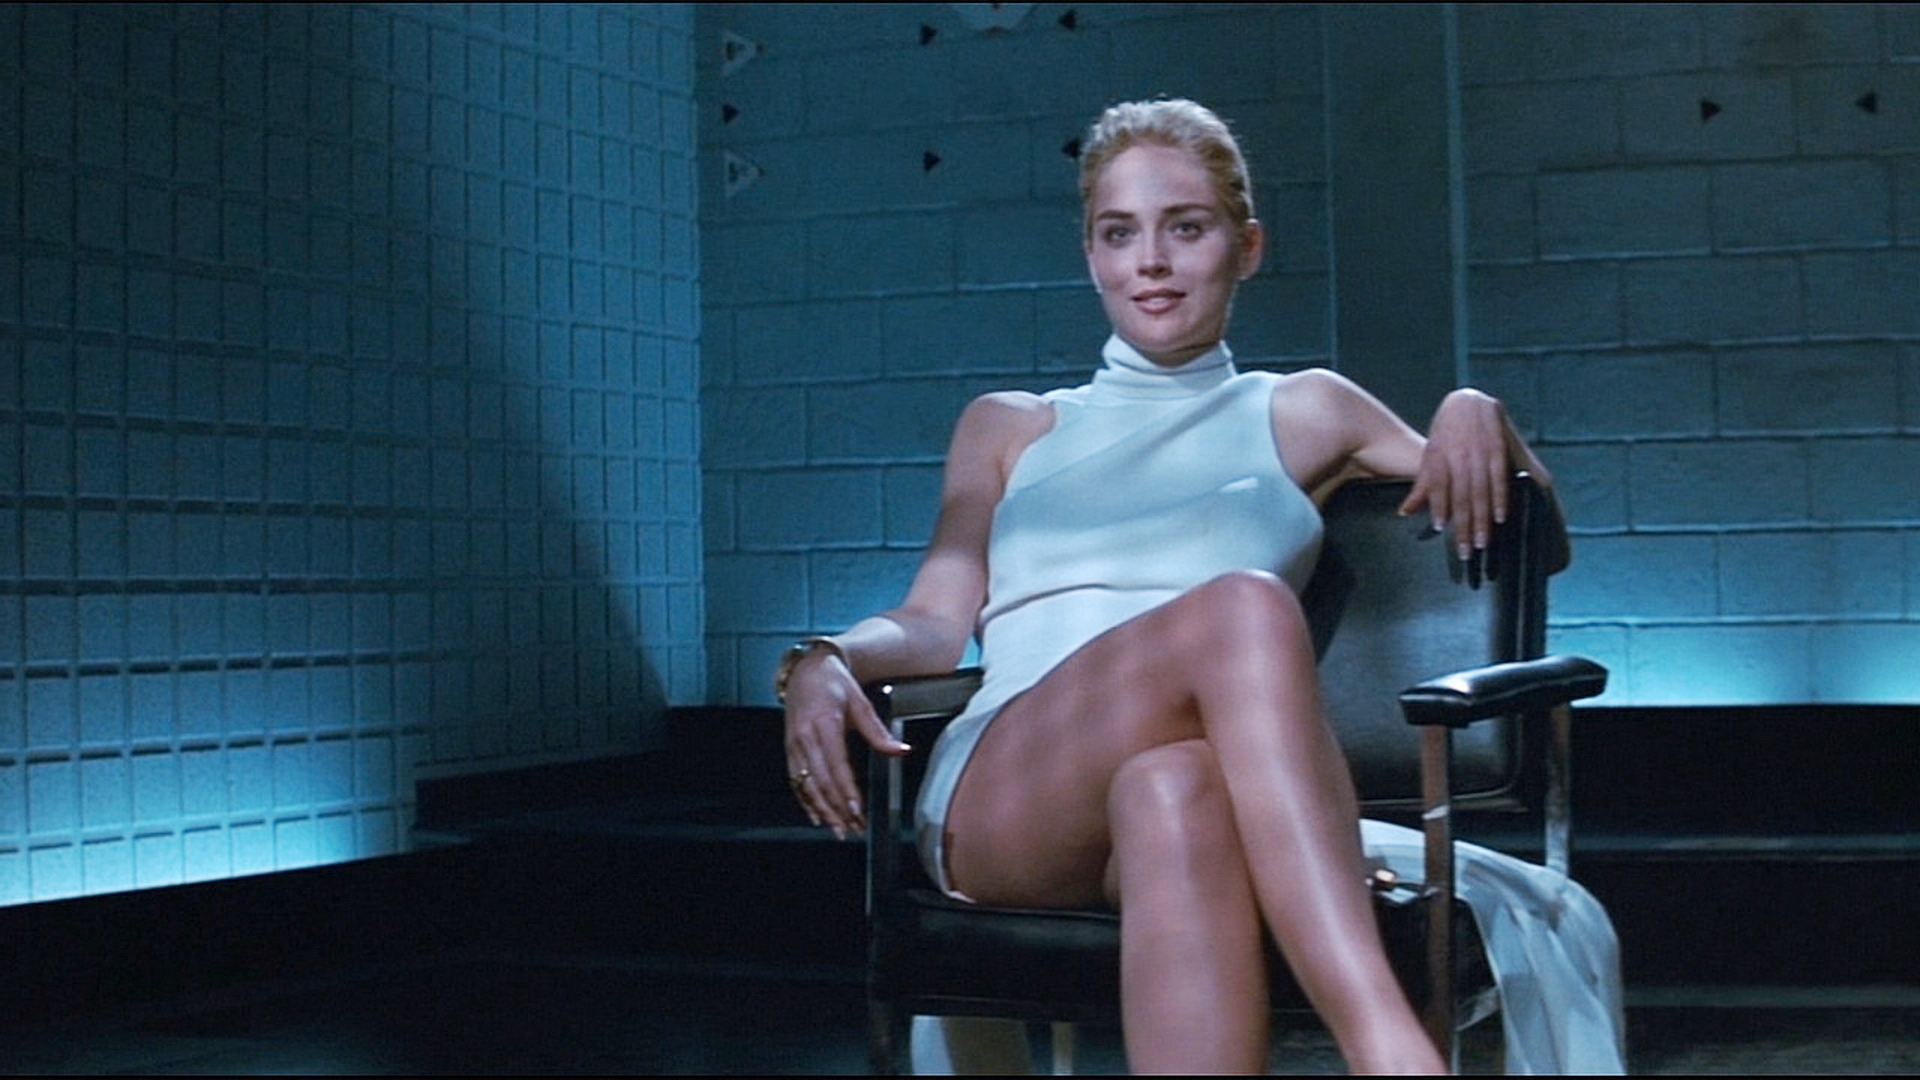 Sharon Stone flashes her lack of underwear during a police interrogation in Basic Instinct (1992)